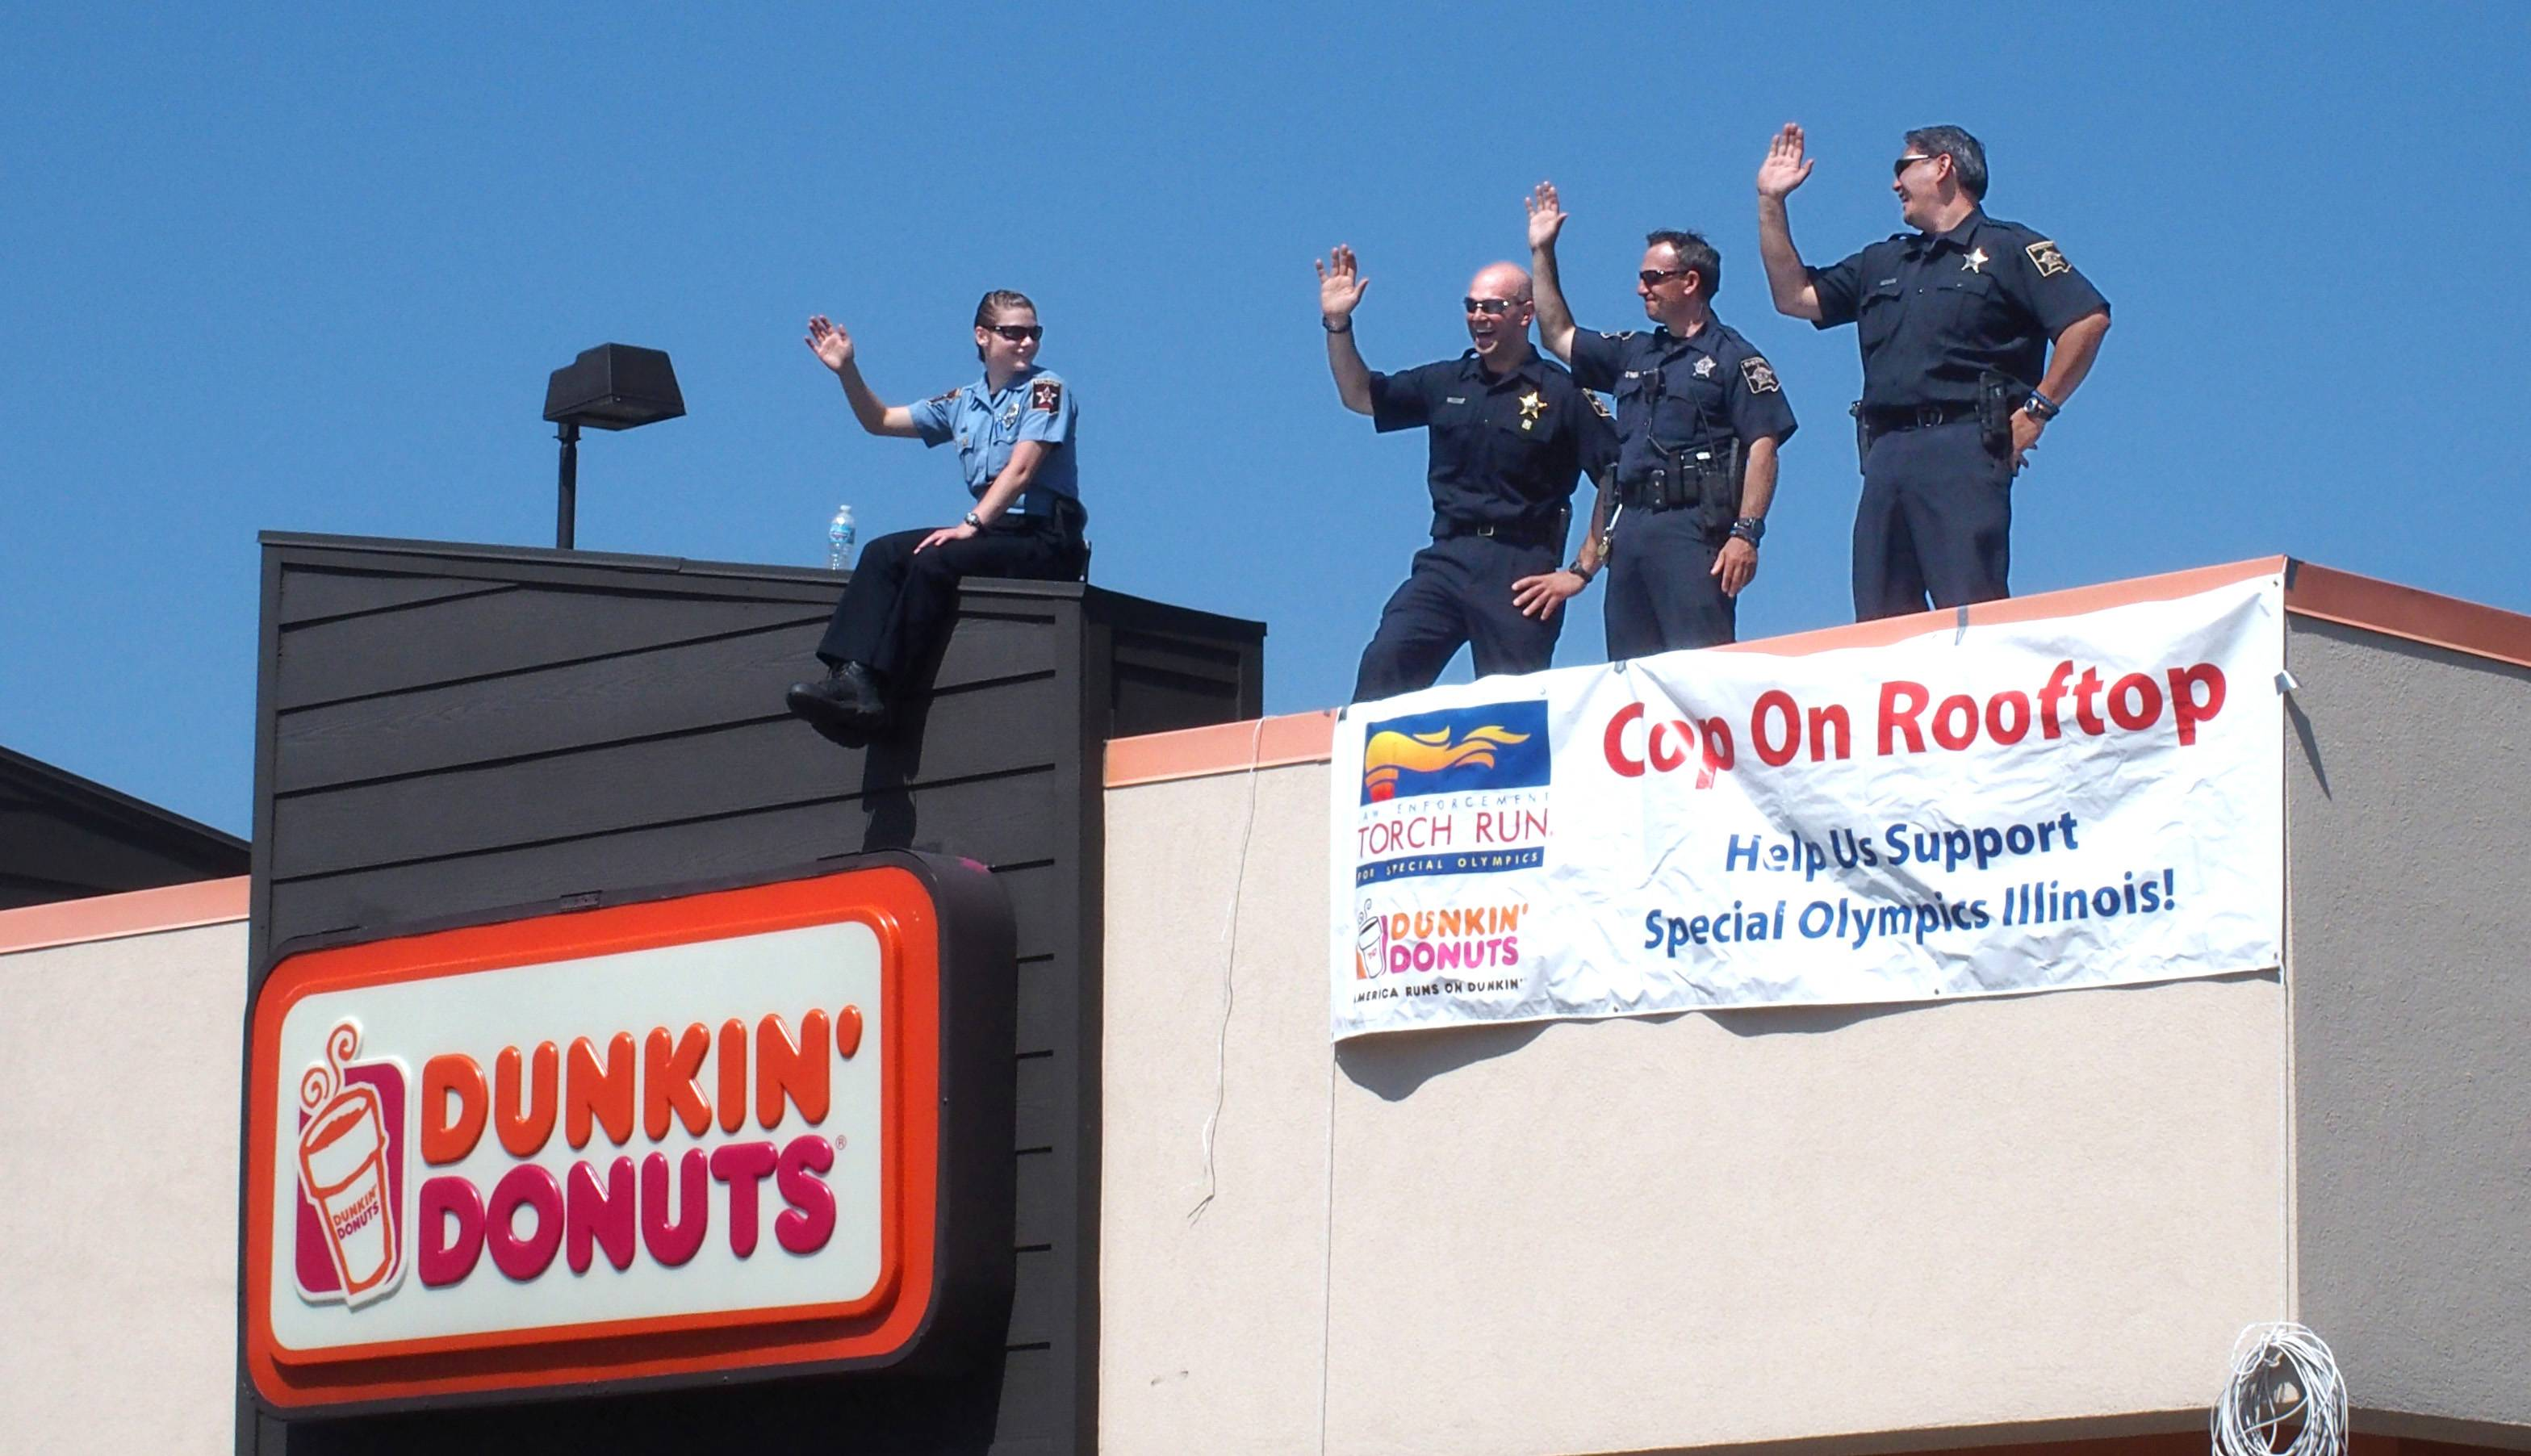 In Naperville, police officers from the DuPage County Sheriff's Department waved at passersby from the roof of the Dunkin' Donuts at 811 E. Ogden Ave.